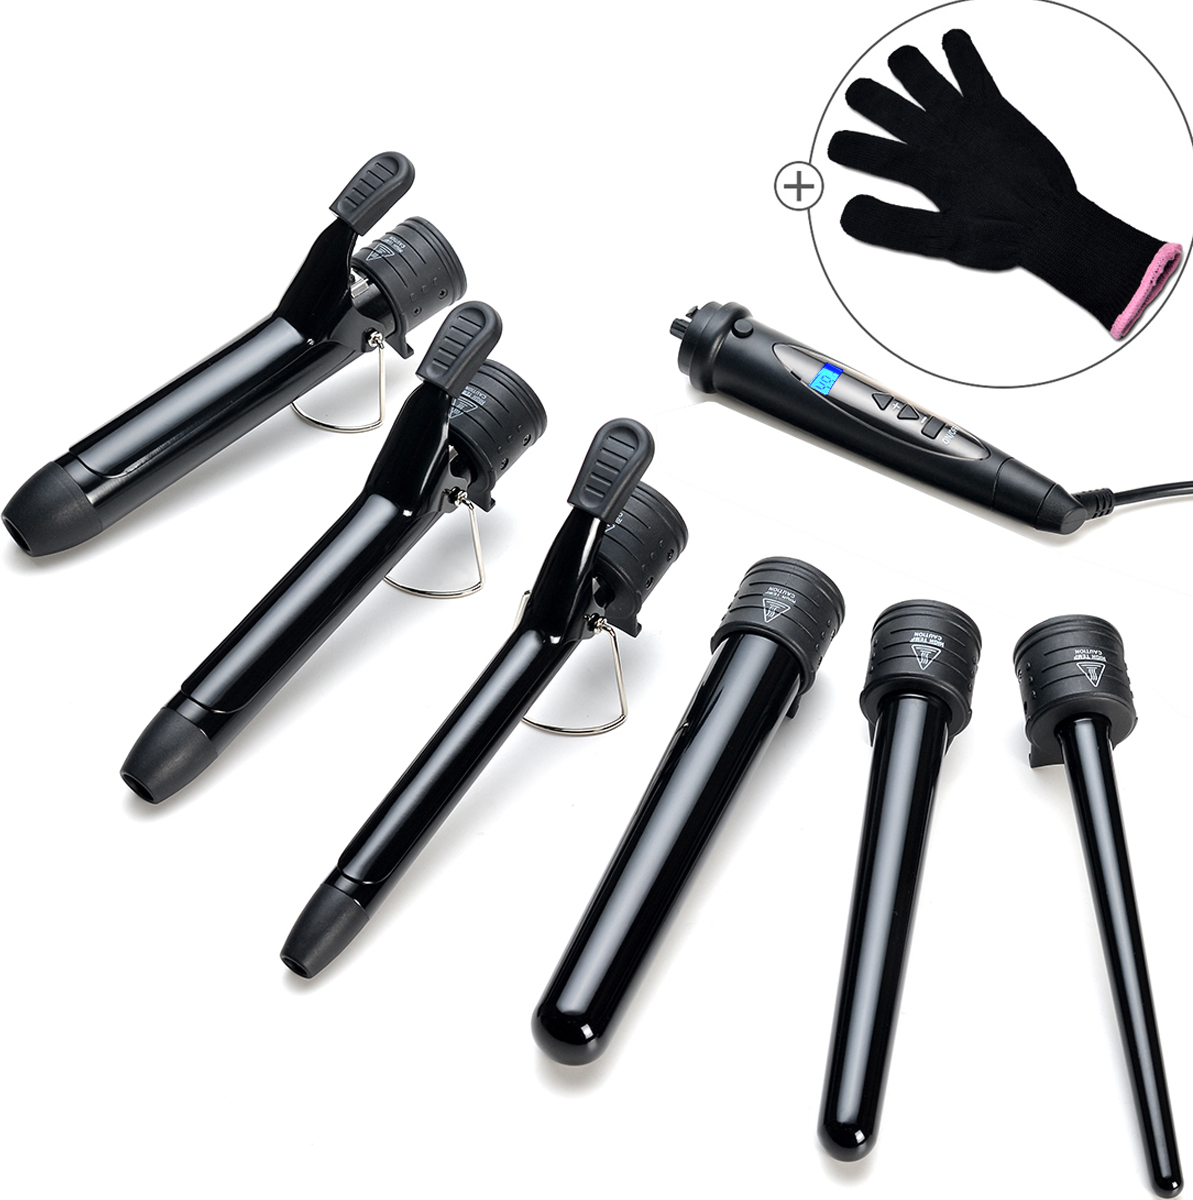 6in1 Electric Hair Curling Iron Wand Automatic Curler Set Wave Machine w/ Heat-Resistant Glove